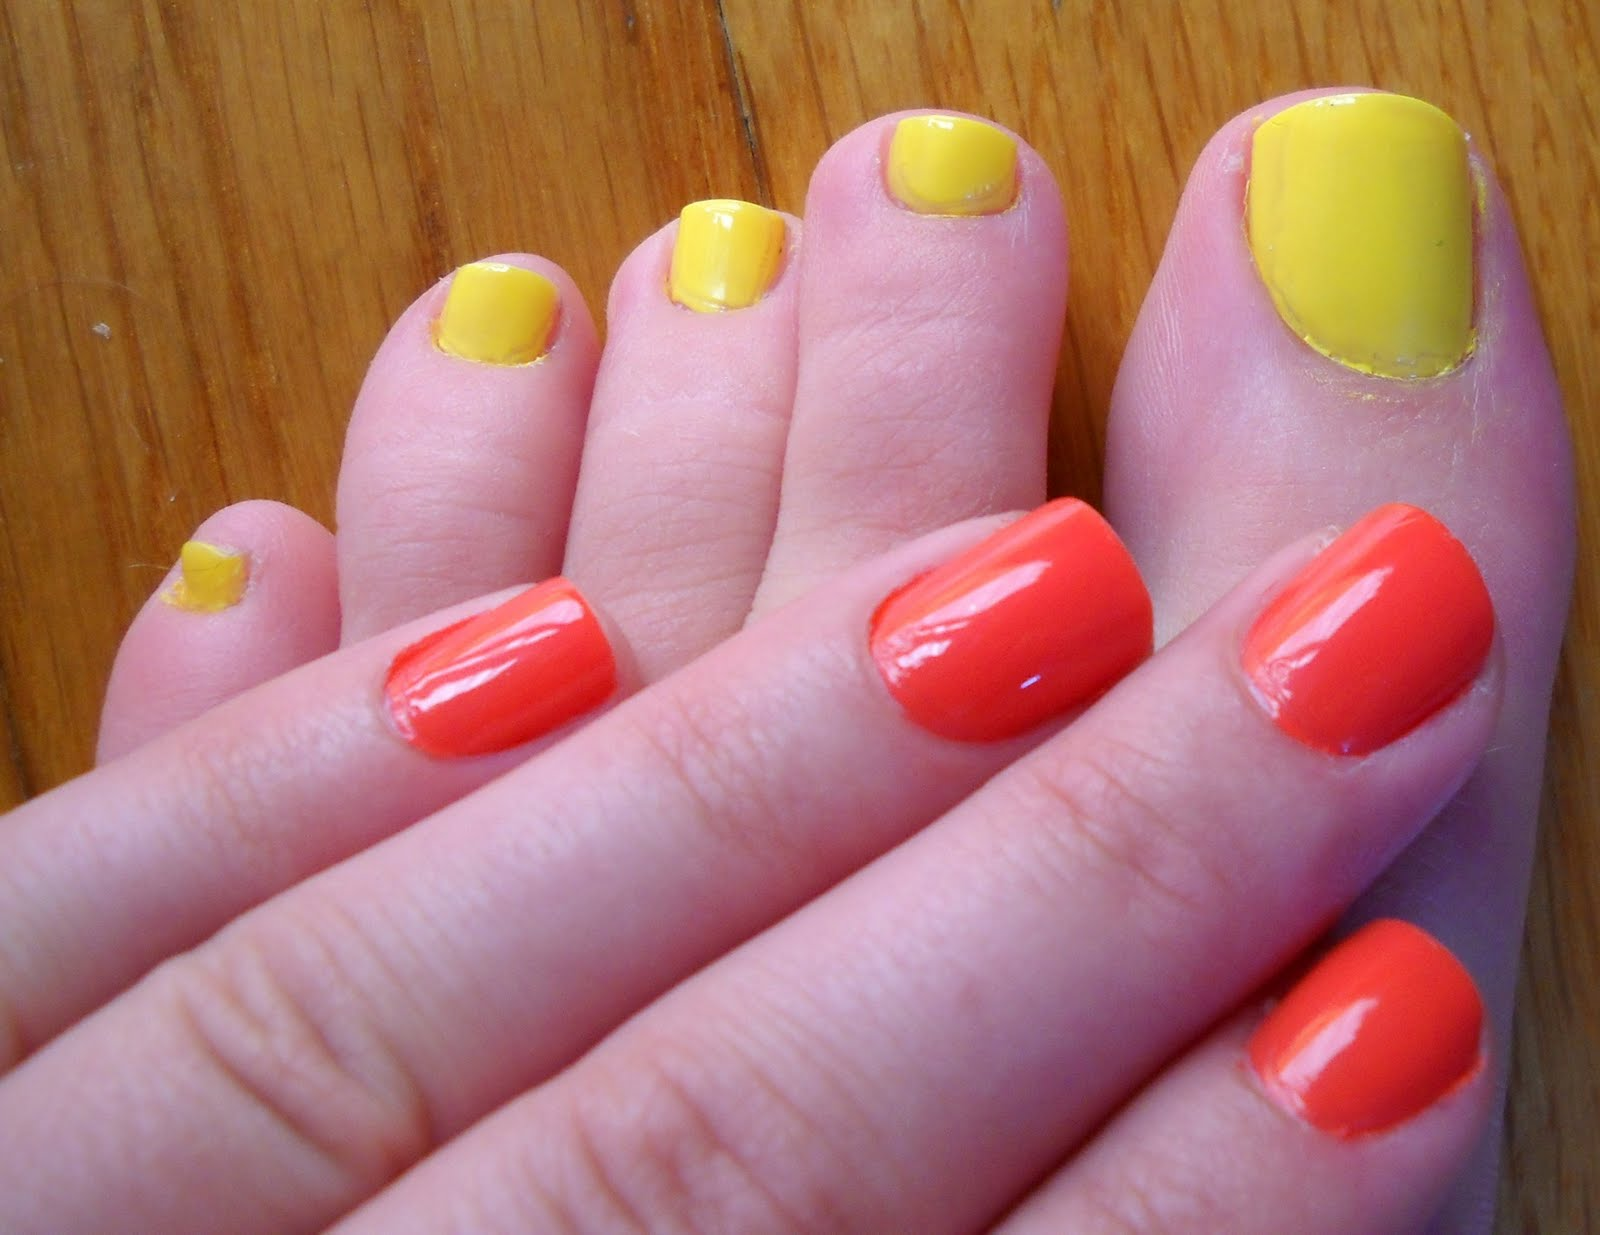 Look Good With Others On Nails And Toes The Key Is To Keep Shades Same Bright Colors Together Pale